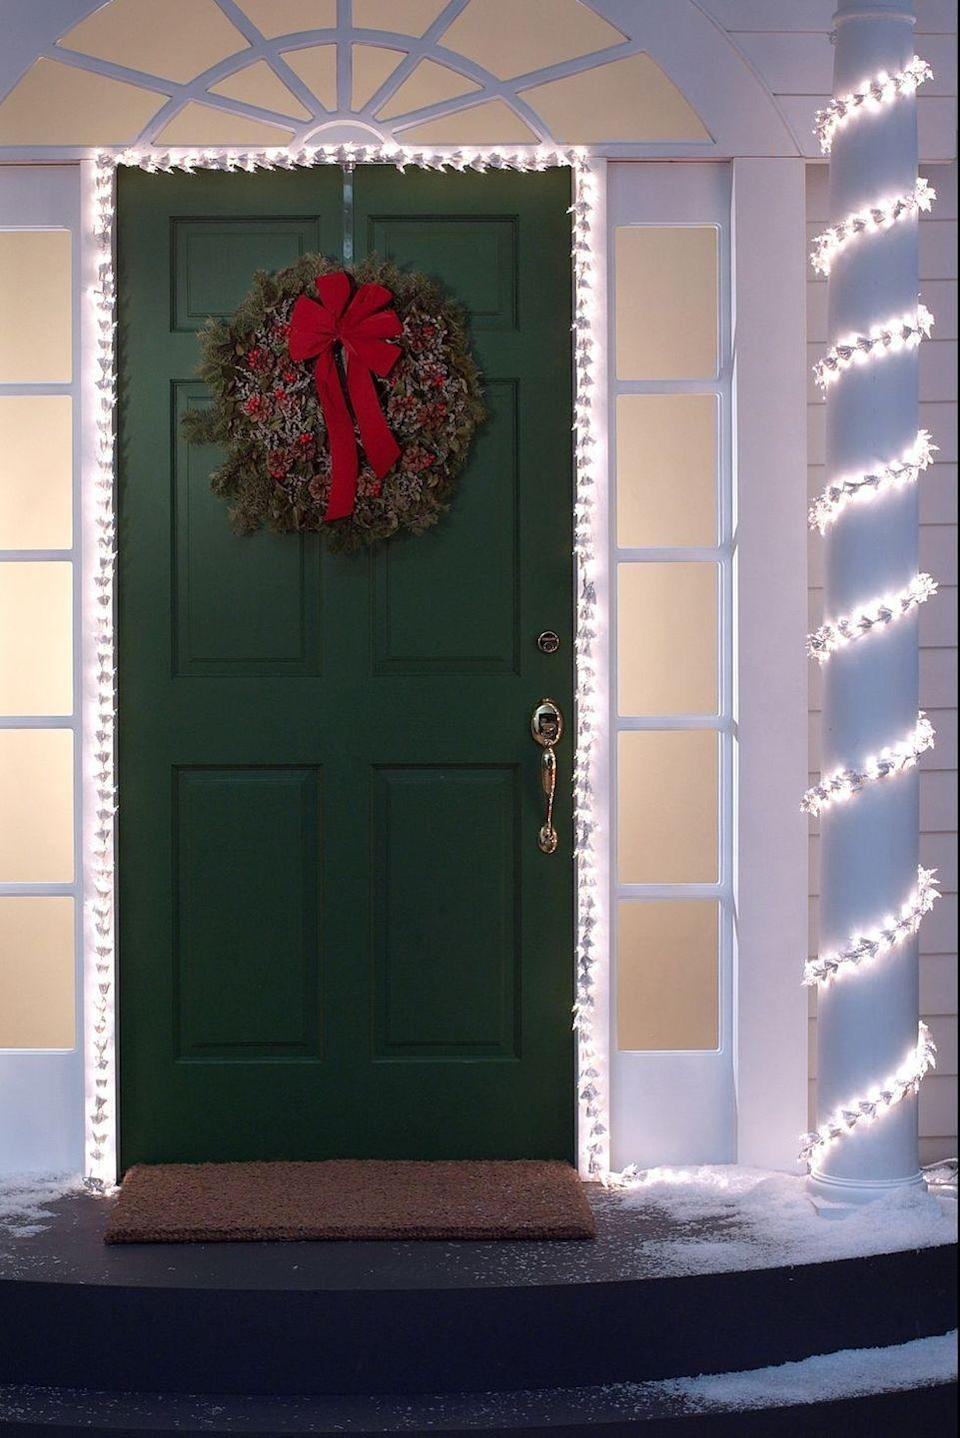 <p>Taking cues from classic candy canes, this festive front door features light-wrapped columns, plus a classic wreath to tie the look together. </p>